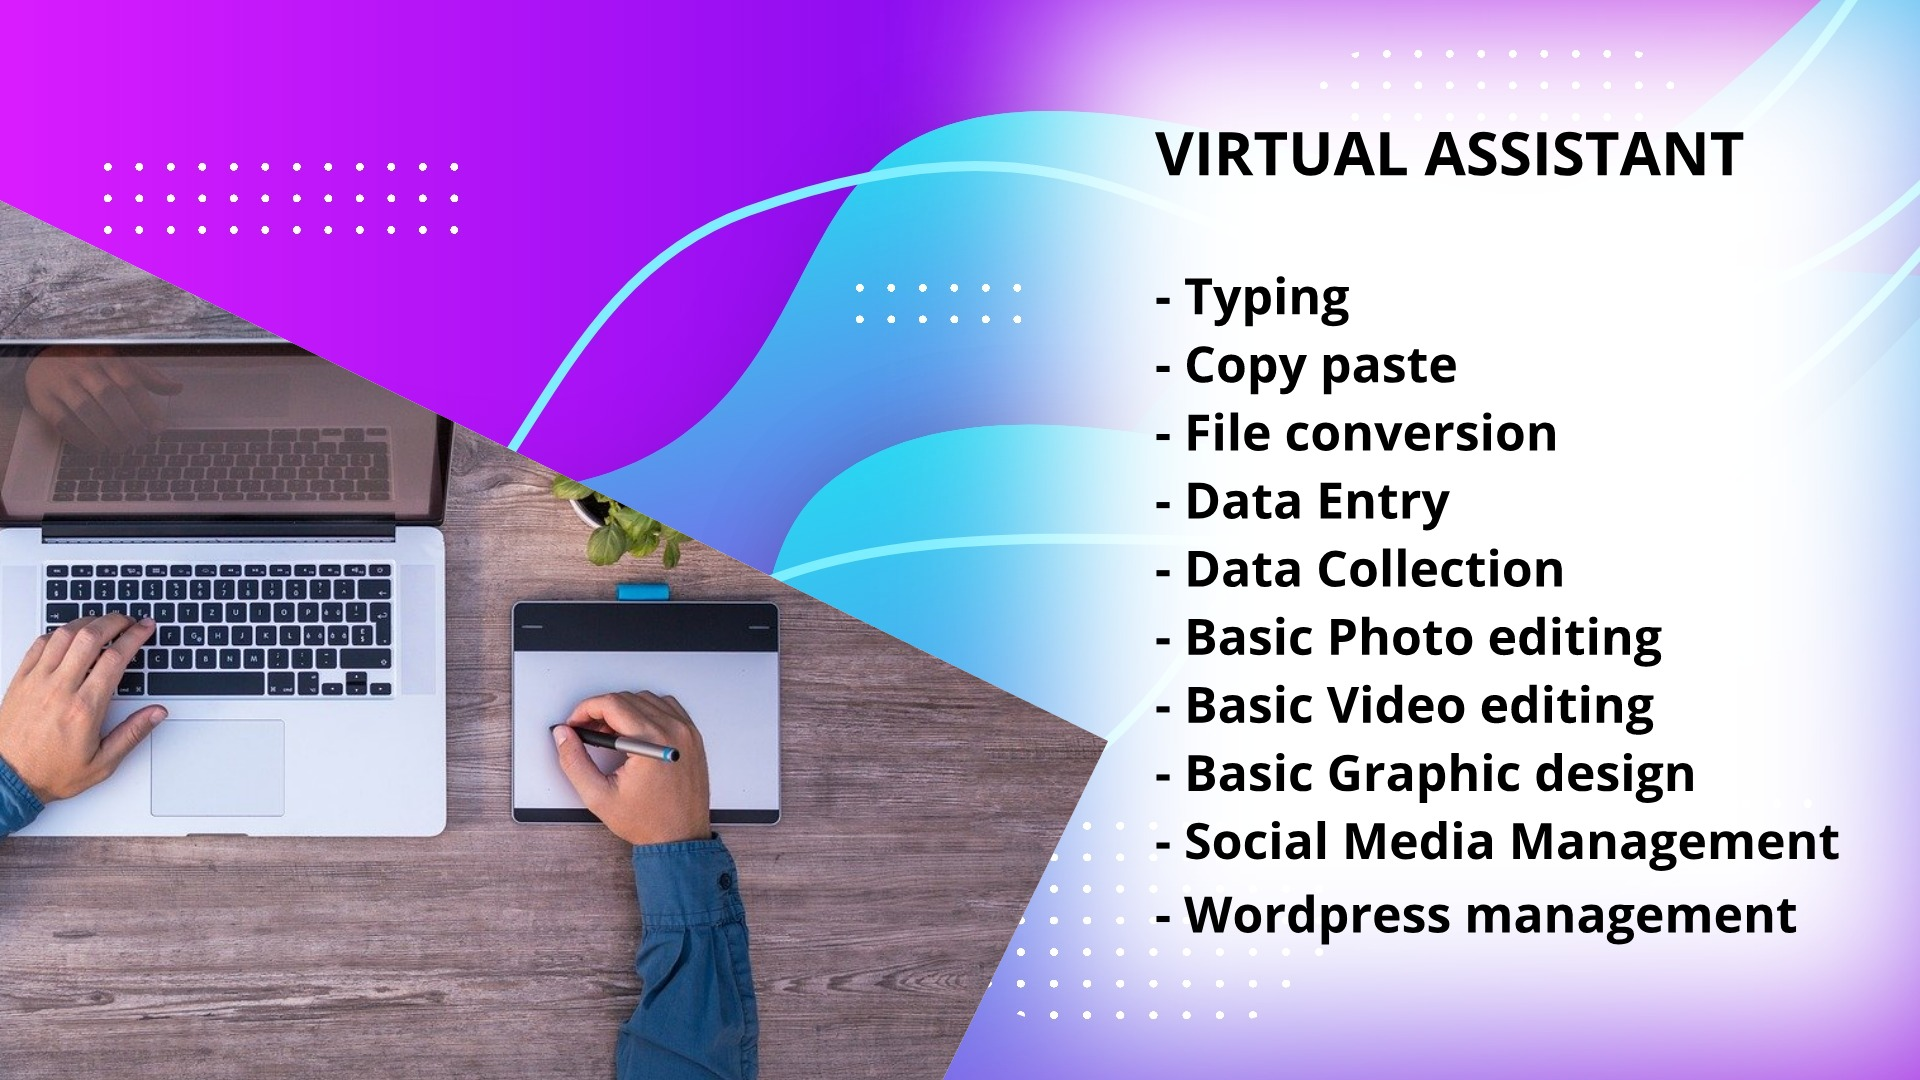 I will do data entry, wordpress, editing, virtual assistant etc, FiverrBox